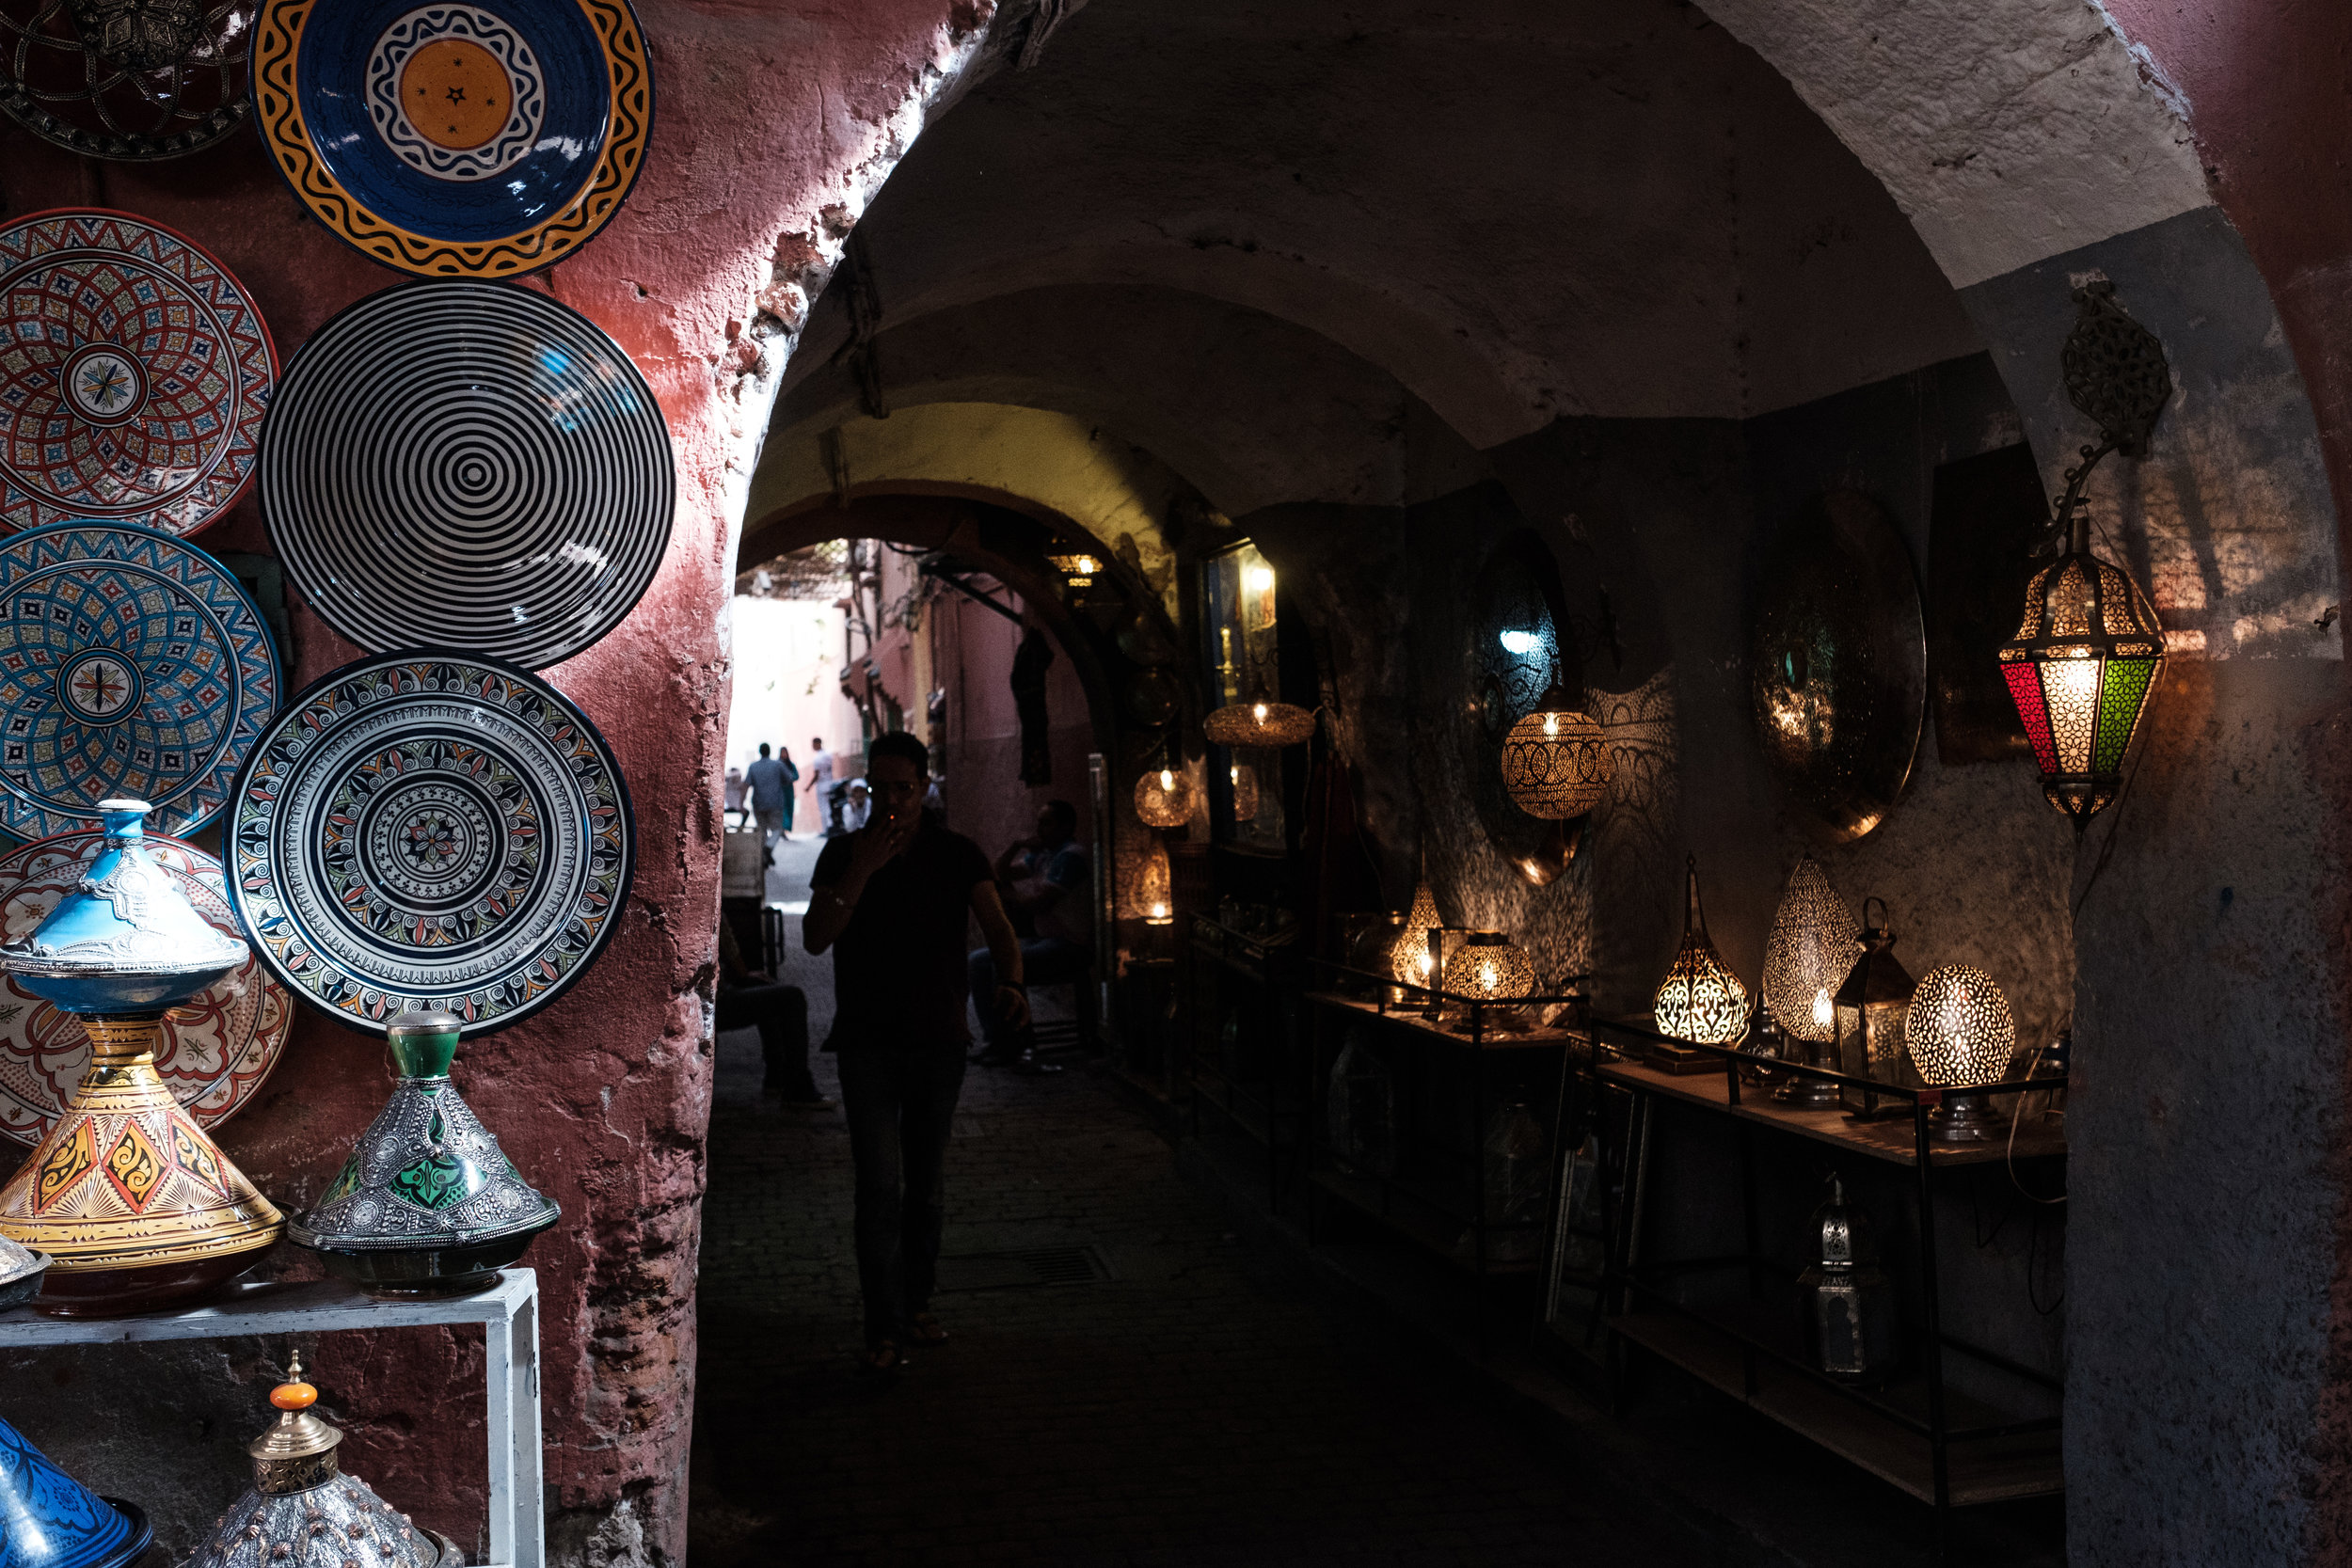 Moroccan pottery and lamps on display.